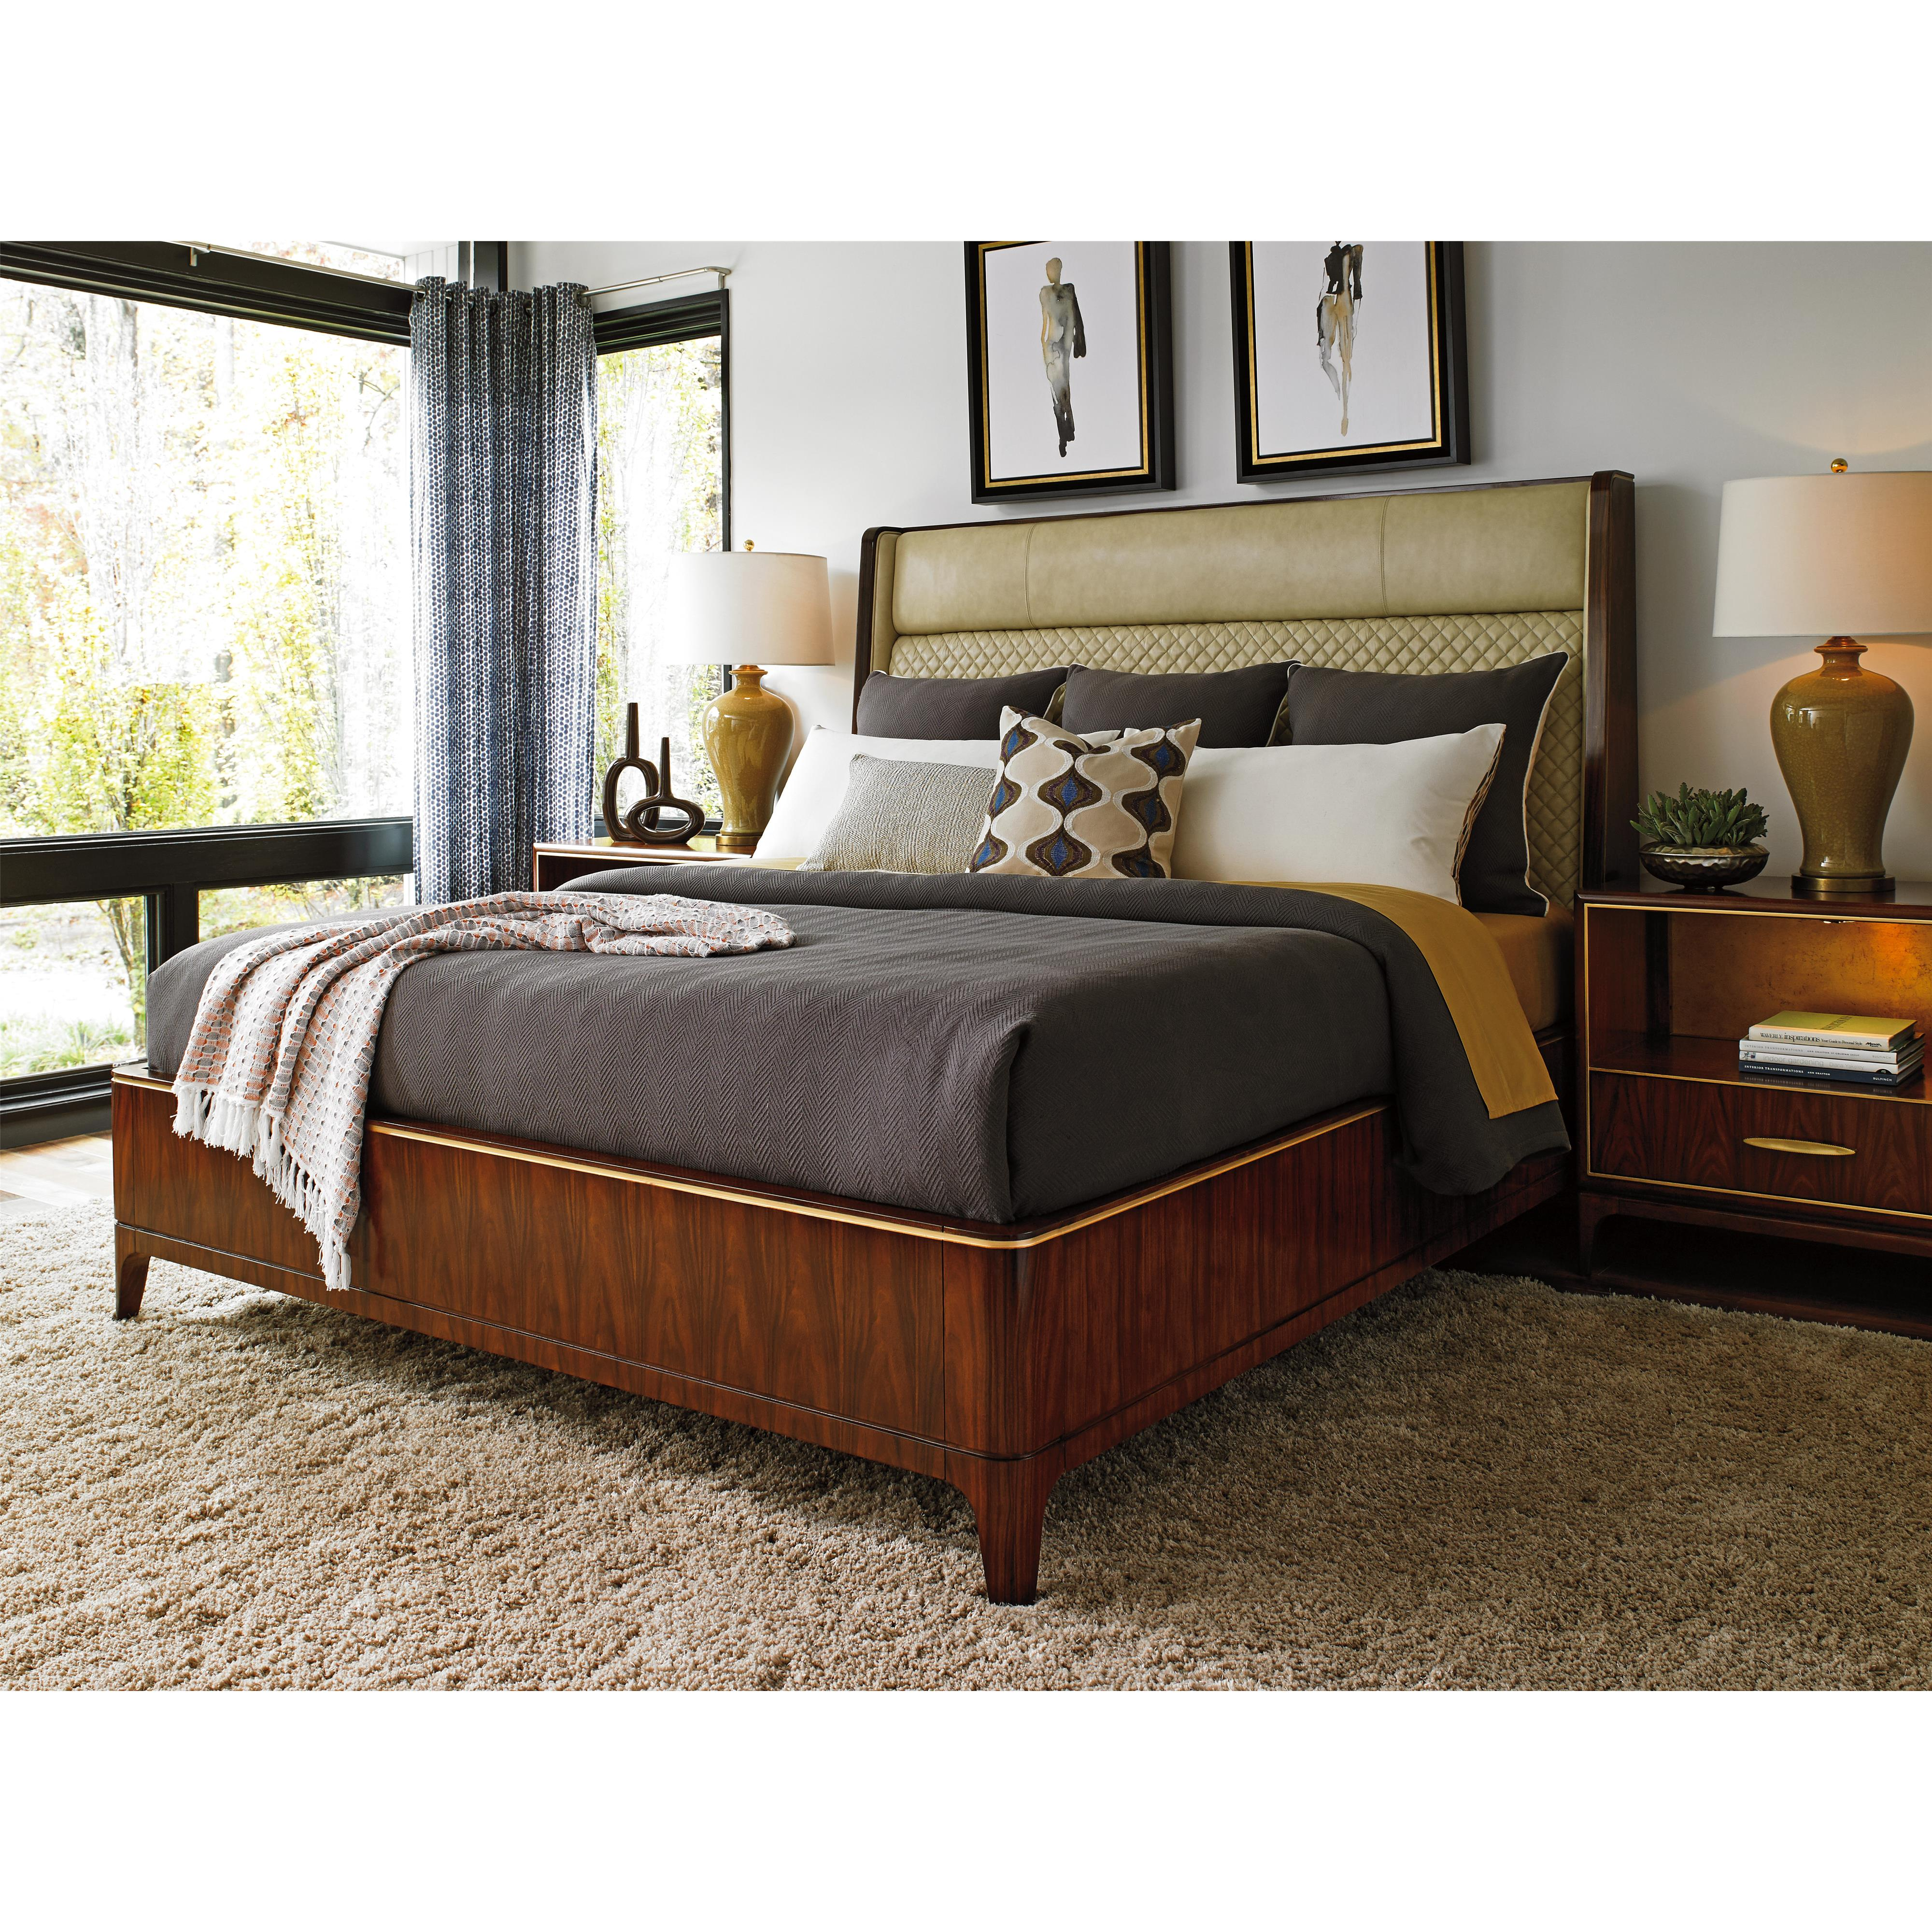 Lexington Take Five Empire Queen Sized Bed With Quilted Leather Shelter Headboard Reeds